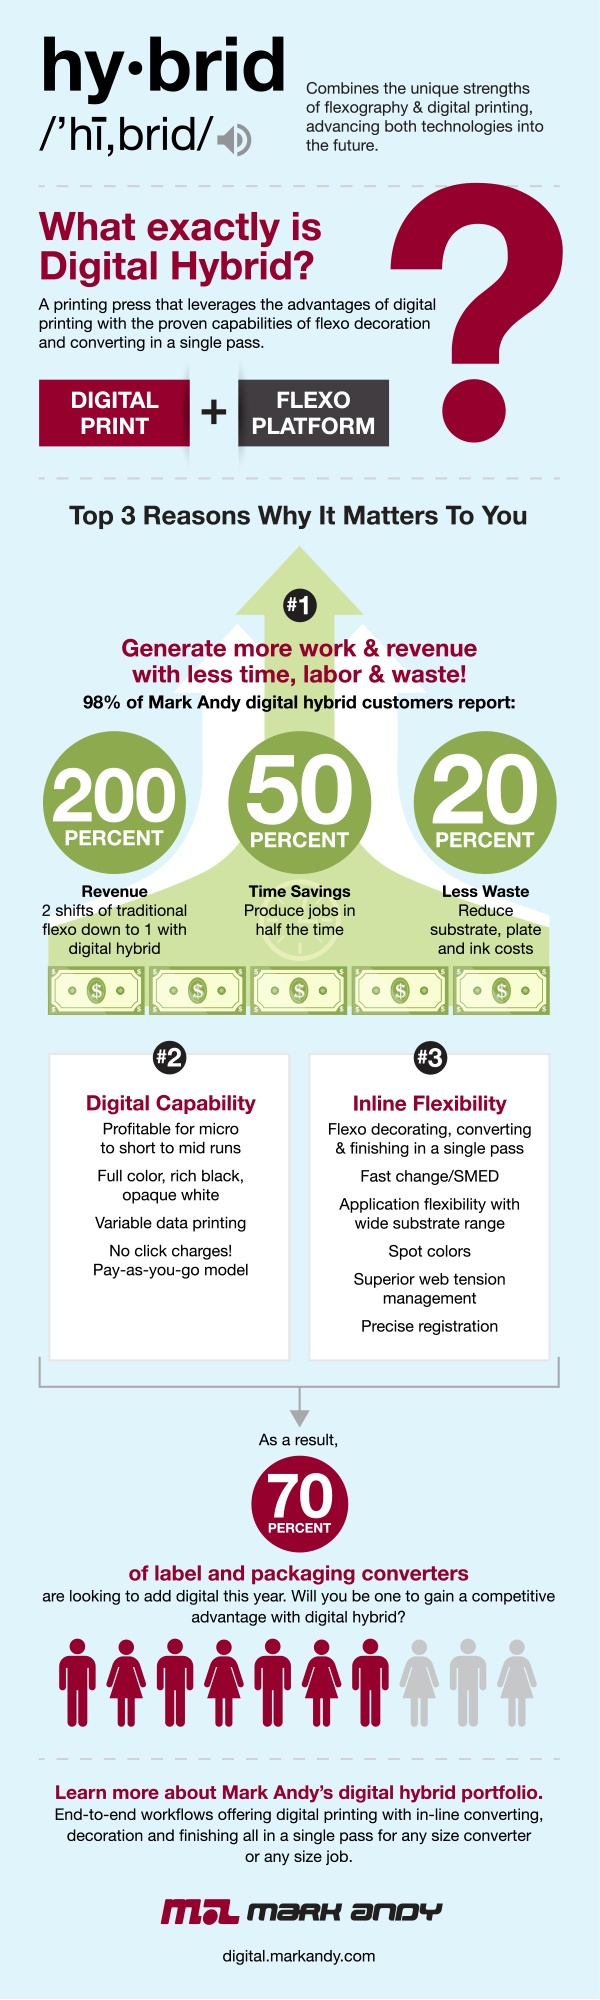 Meaning-of-Digital-Hybrid-Printing_Infographic.jpg